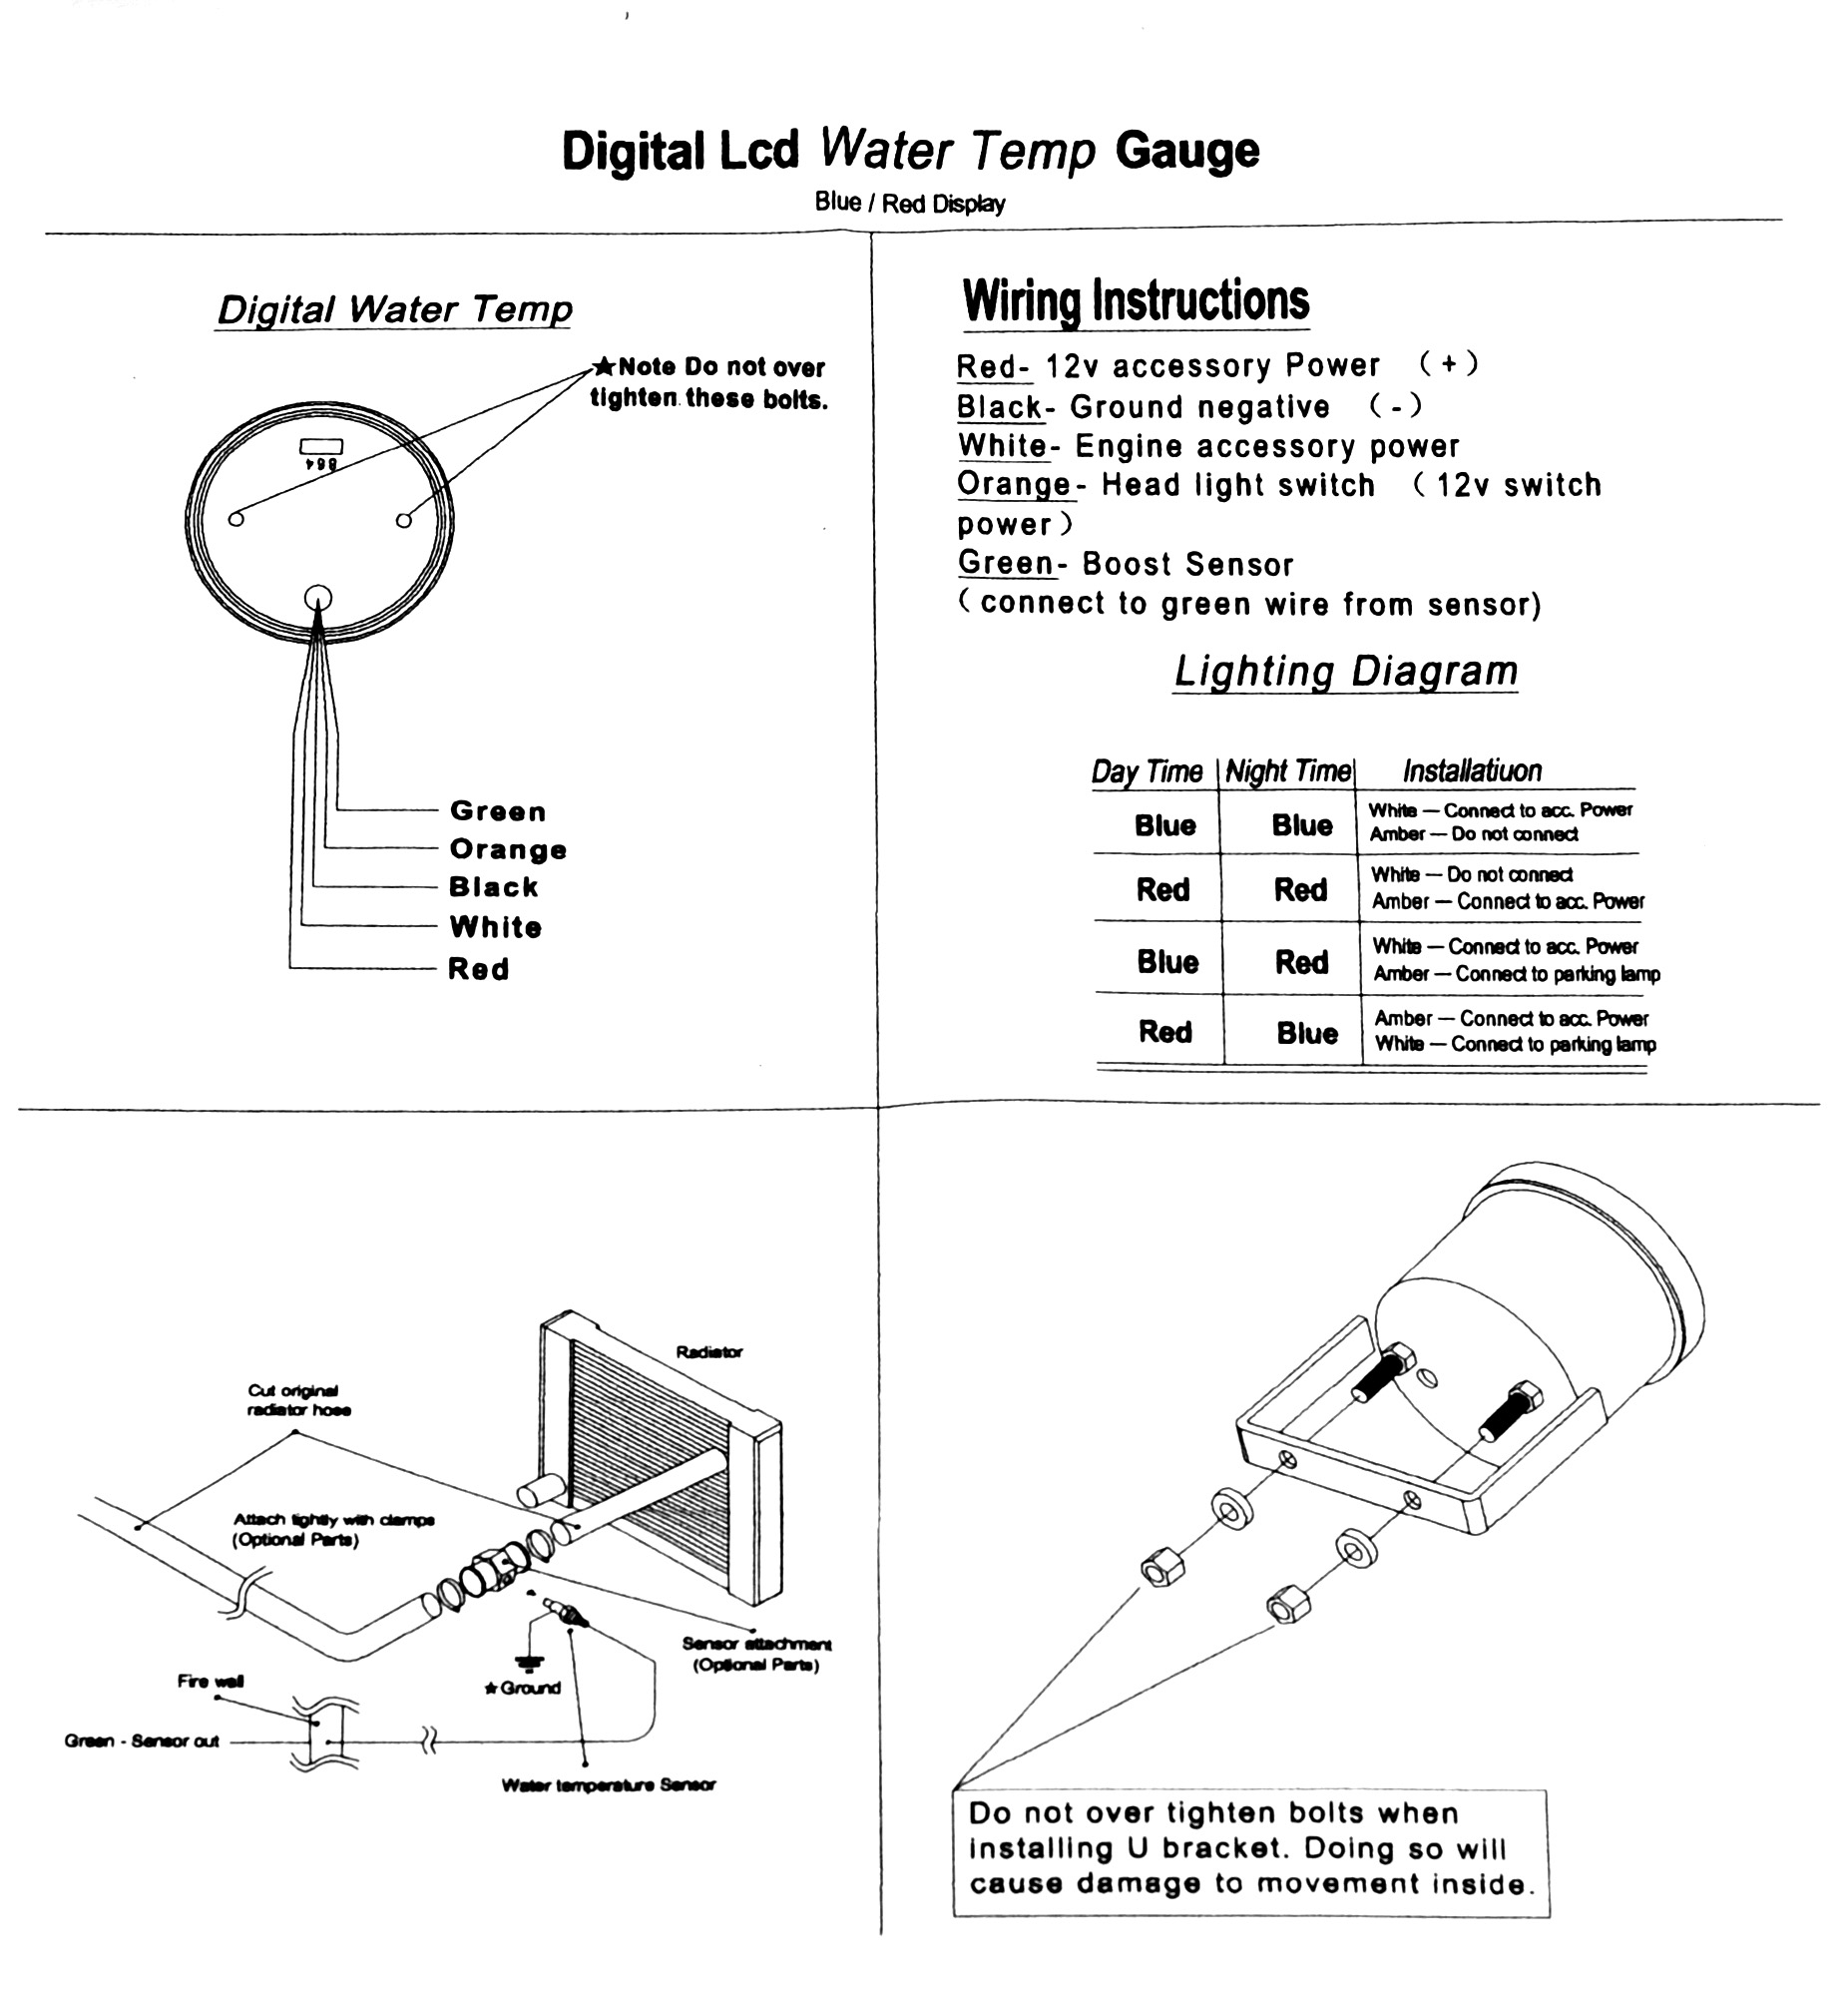 1974 Jeep Cj5 Wiring Diagram Temp Gauge | Wiring Liry  Jeep Cj Wiring Diagram Temp Gauge on 1974 chevrolet impala wiring diagram, 1976 jeep cj5 wiring diagram, 1974 oldsmobile omega wiring diagram, 1974 dodge challenger wiring diagram, 1978 jeep cj5 wiring diagram, jeep cj5 body mount diagram, 1983 jeep cj5 wiring diagram, 1975 cj5 voltage diagram, 1980 jeep cj5 wiring diagram, 1974 pontiac firebird wiring diagram, 1977 jeep cj5 wiring diagram, 1974 chevy el camino wiring diagram, 1972 jeep cj5 wiring diagram, 1973 jeep cj5 wiring diagram, 1955 jeep cj5 wiring diagram, 1974 ford courier wiring diagram, 1974 ford bronco wiring diagram, 1969 jeep cj5 wiring diagram, 1974 ford ltd wiring diagram, 1975 jeep cj5 wiring diagram,